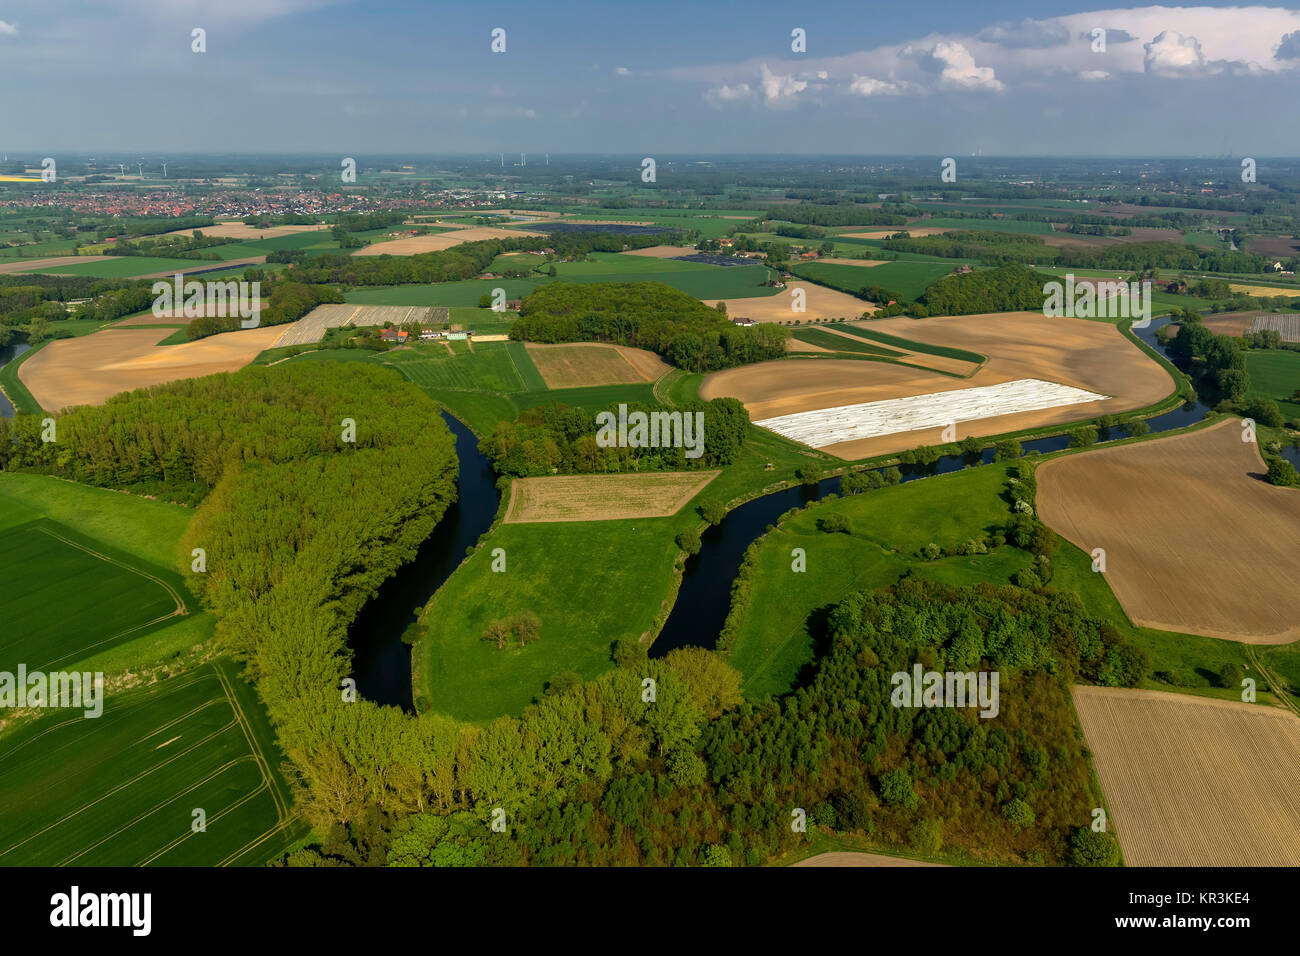 Olfen, Lippe, meander, Lippe meander, meandering river, nature reserve, Lippeauen, Lippe course, Münsterland, - Stock Image